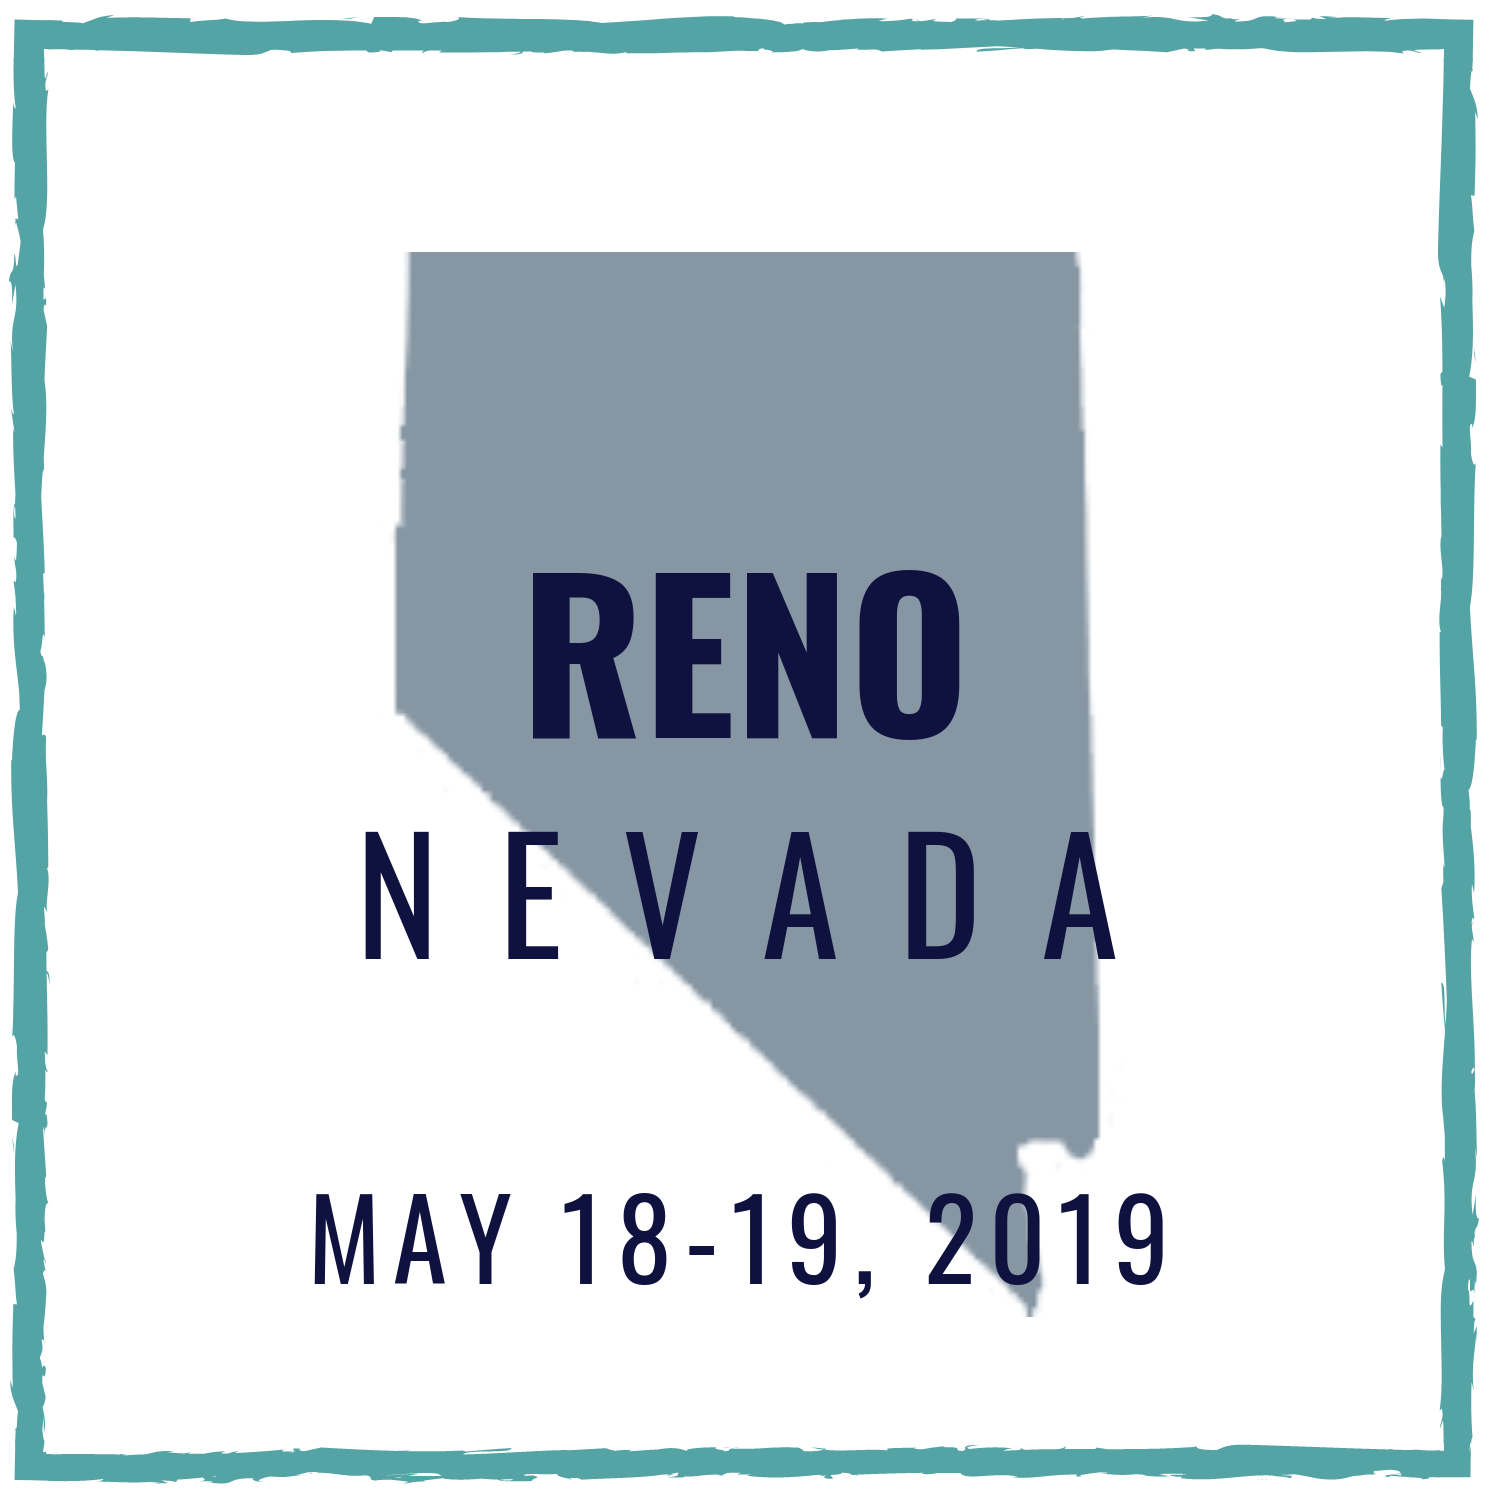 Copy of NEVADA DOG TRAINING SEMINAR